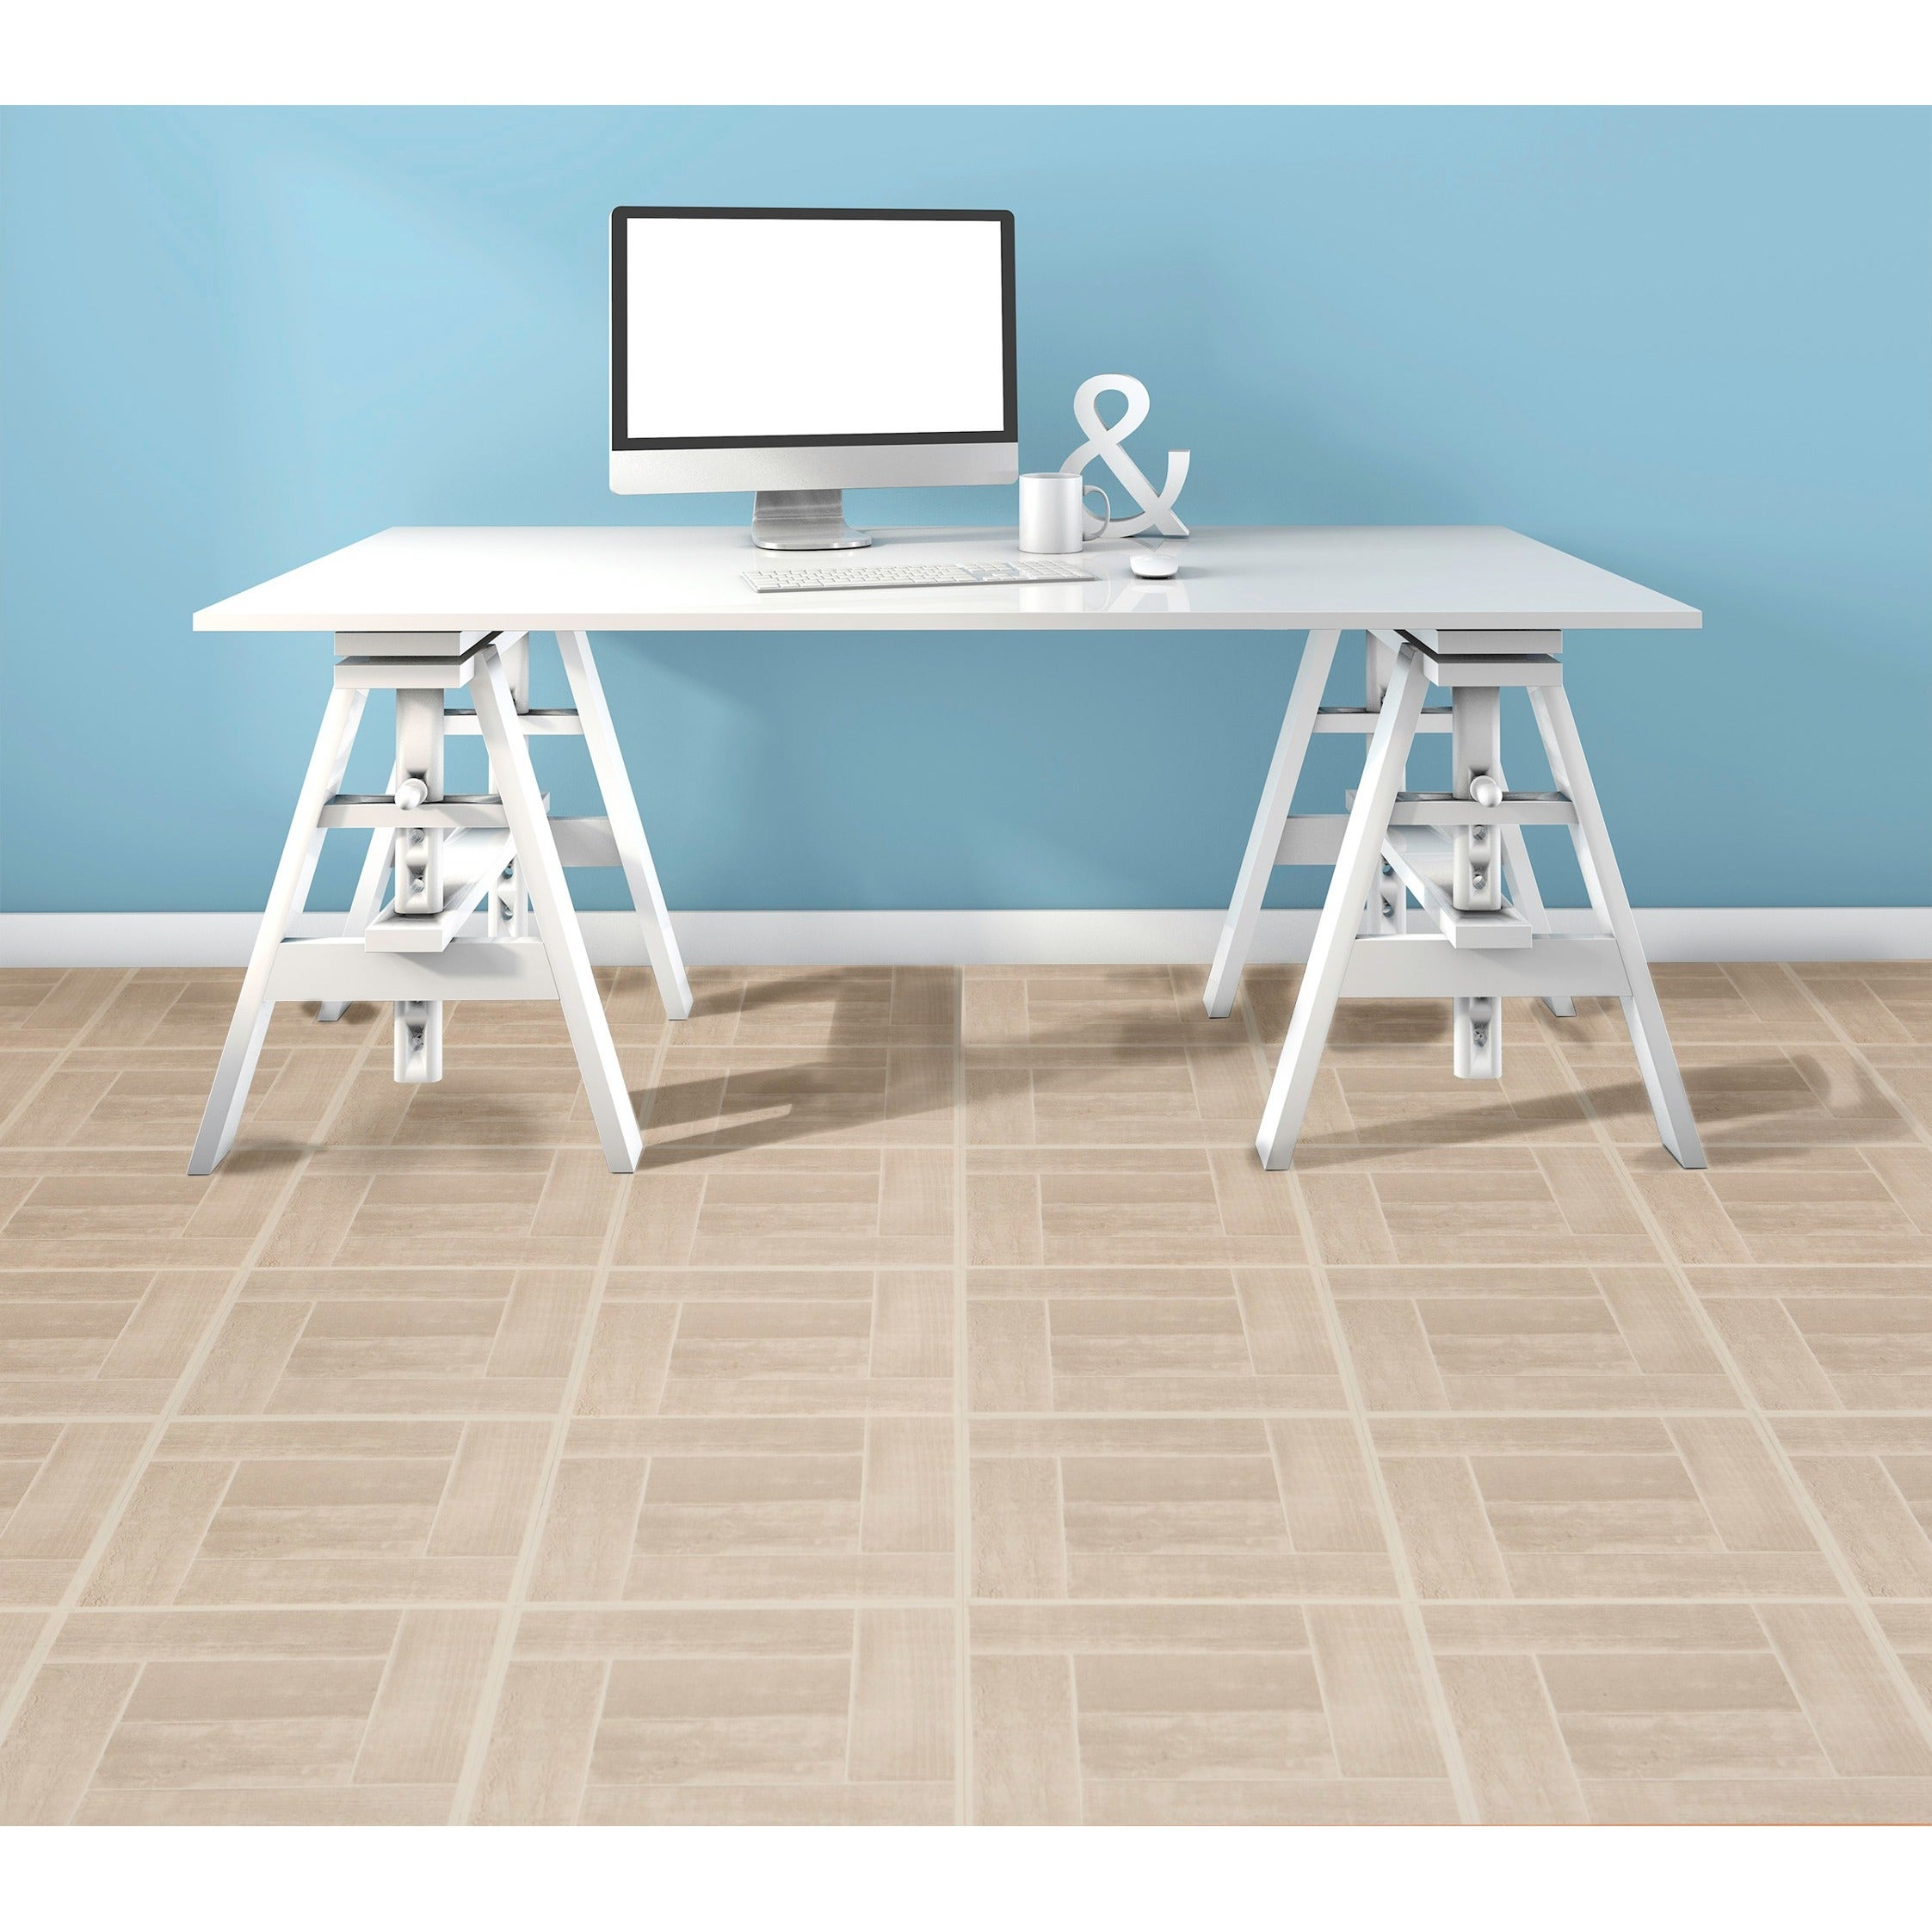 Achim nexus saddlewood 12x12 self adhesive vinyl floor tile 20 achim nexus saddlewood 12x12 self adhesive vinyl floor tile 20 tiles20 sq ft free shipping on orders over 45 overstock 19058705 dailygadgetfo Images